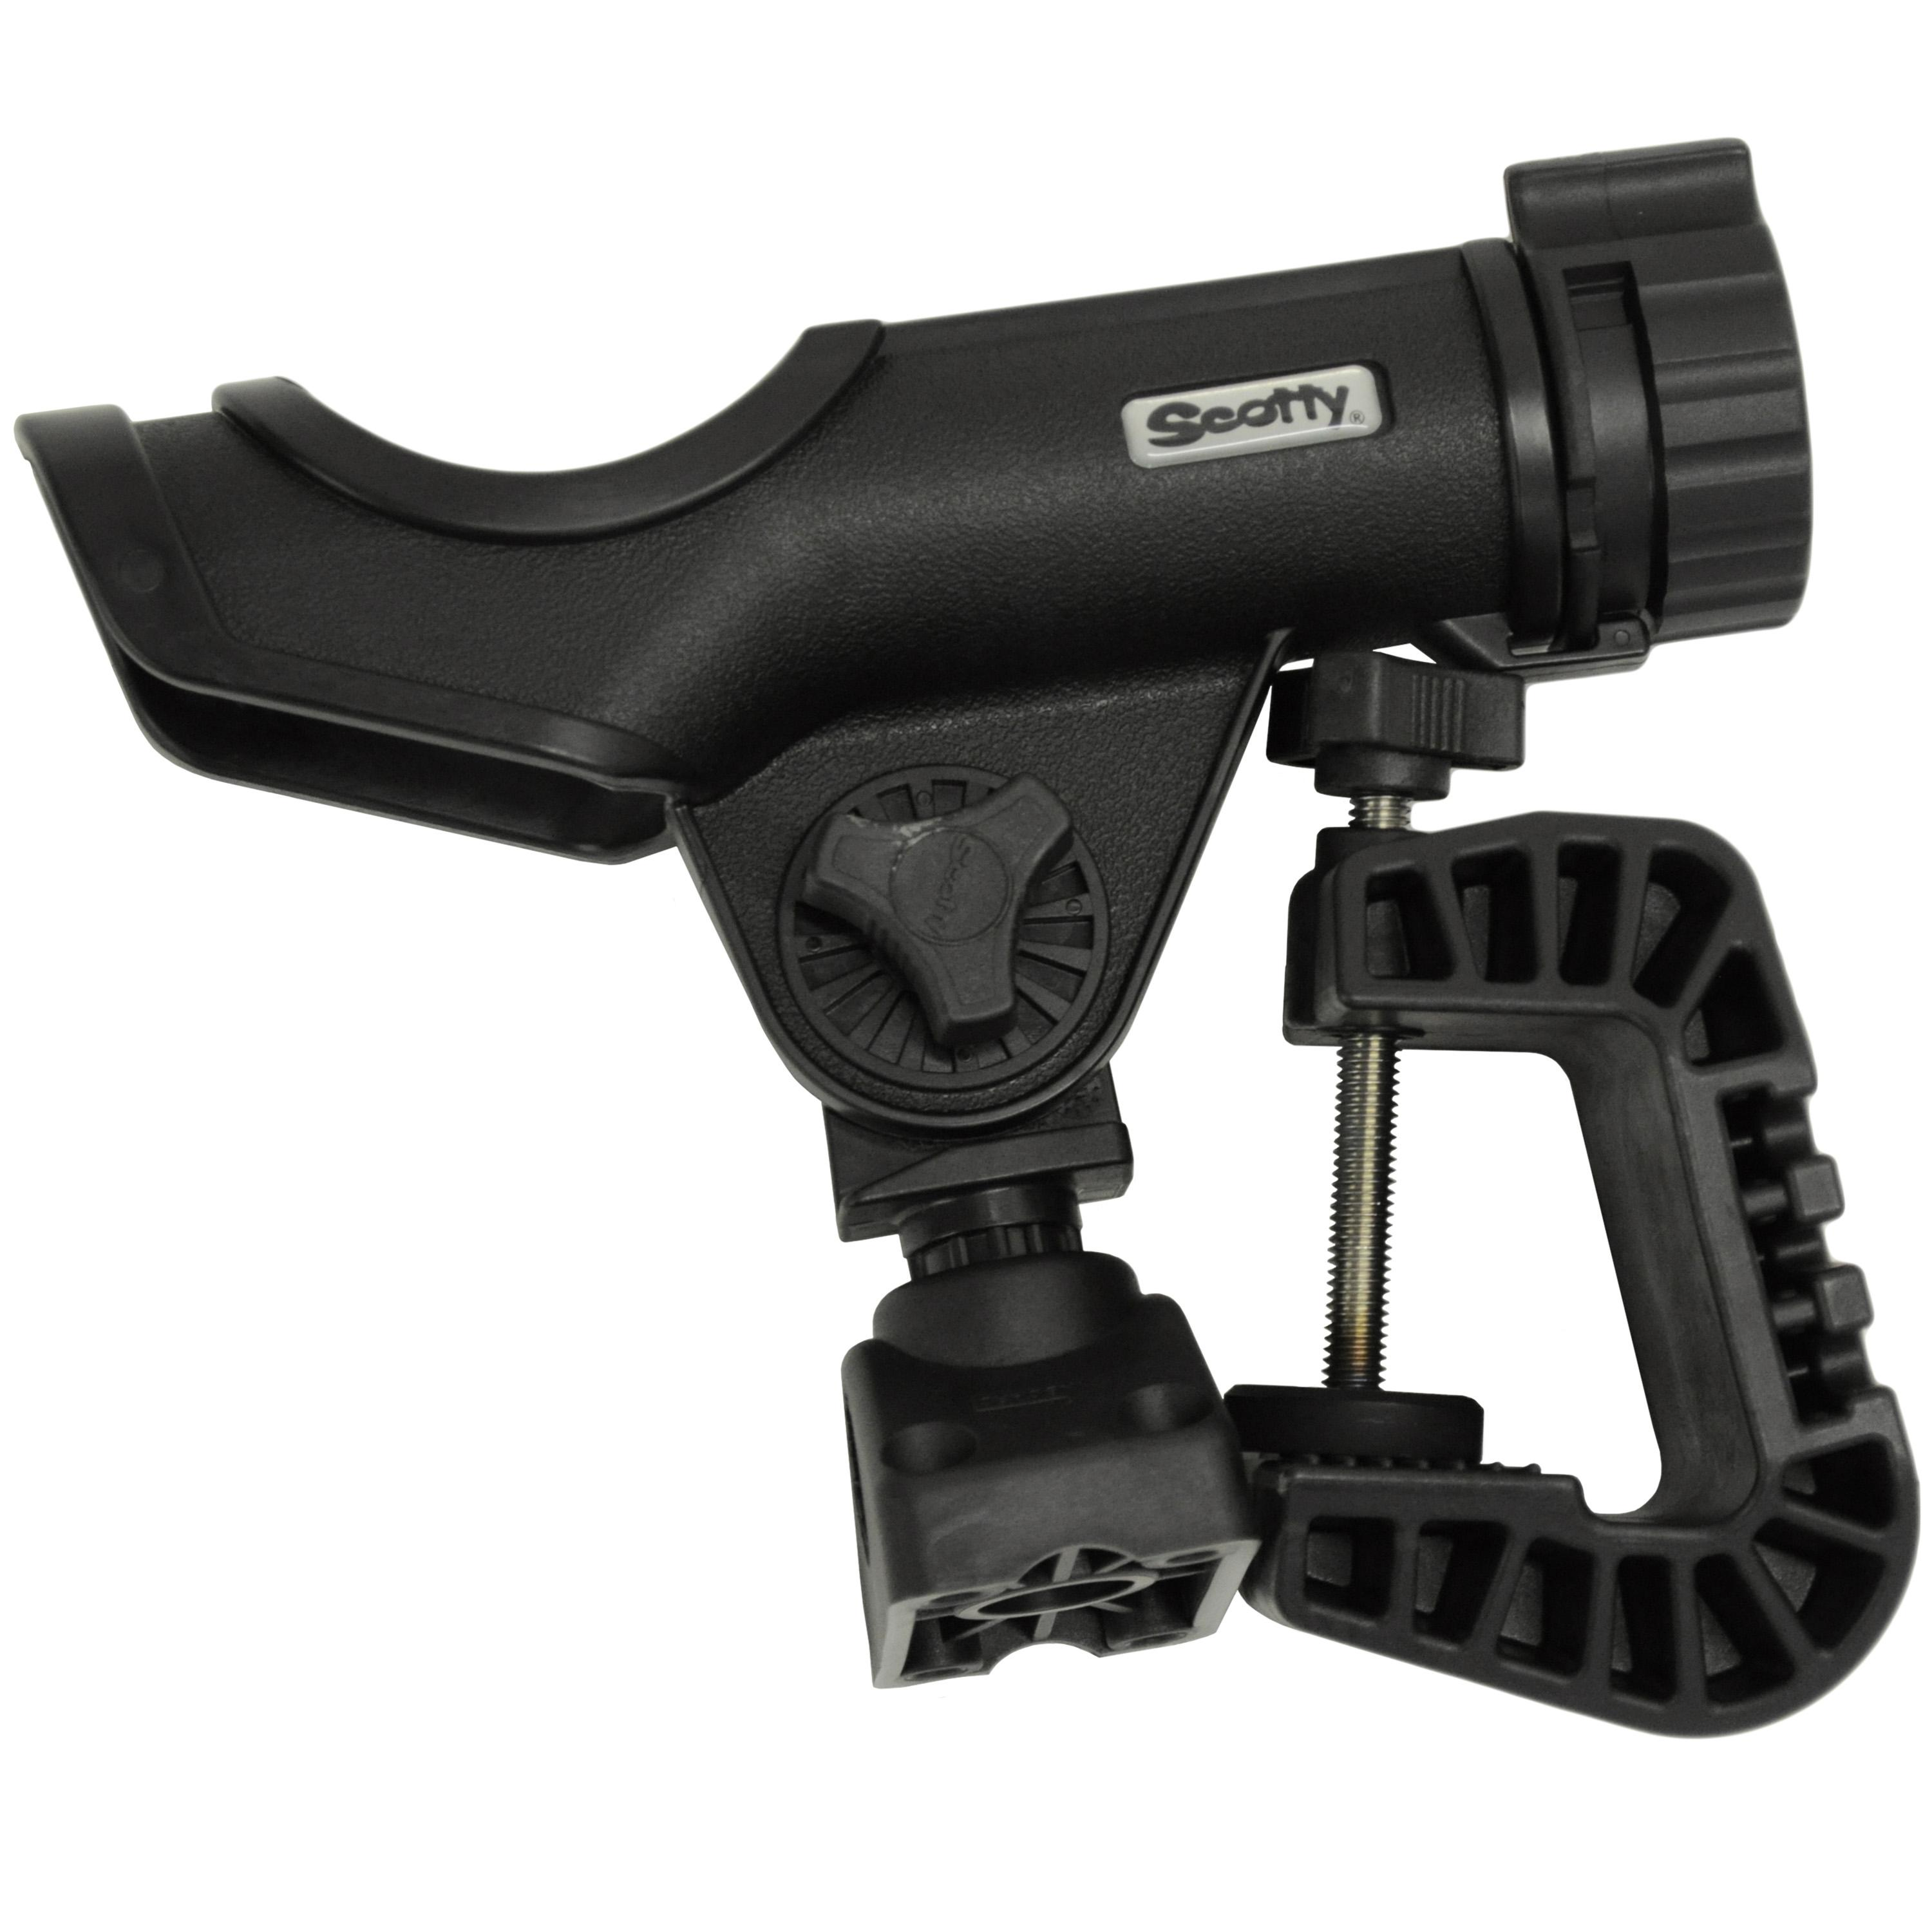 Scotty Powerlock Rod Holder with Portable Clamp Mount